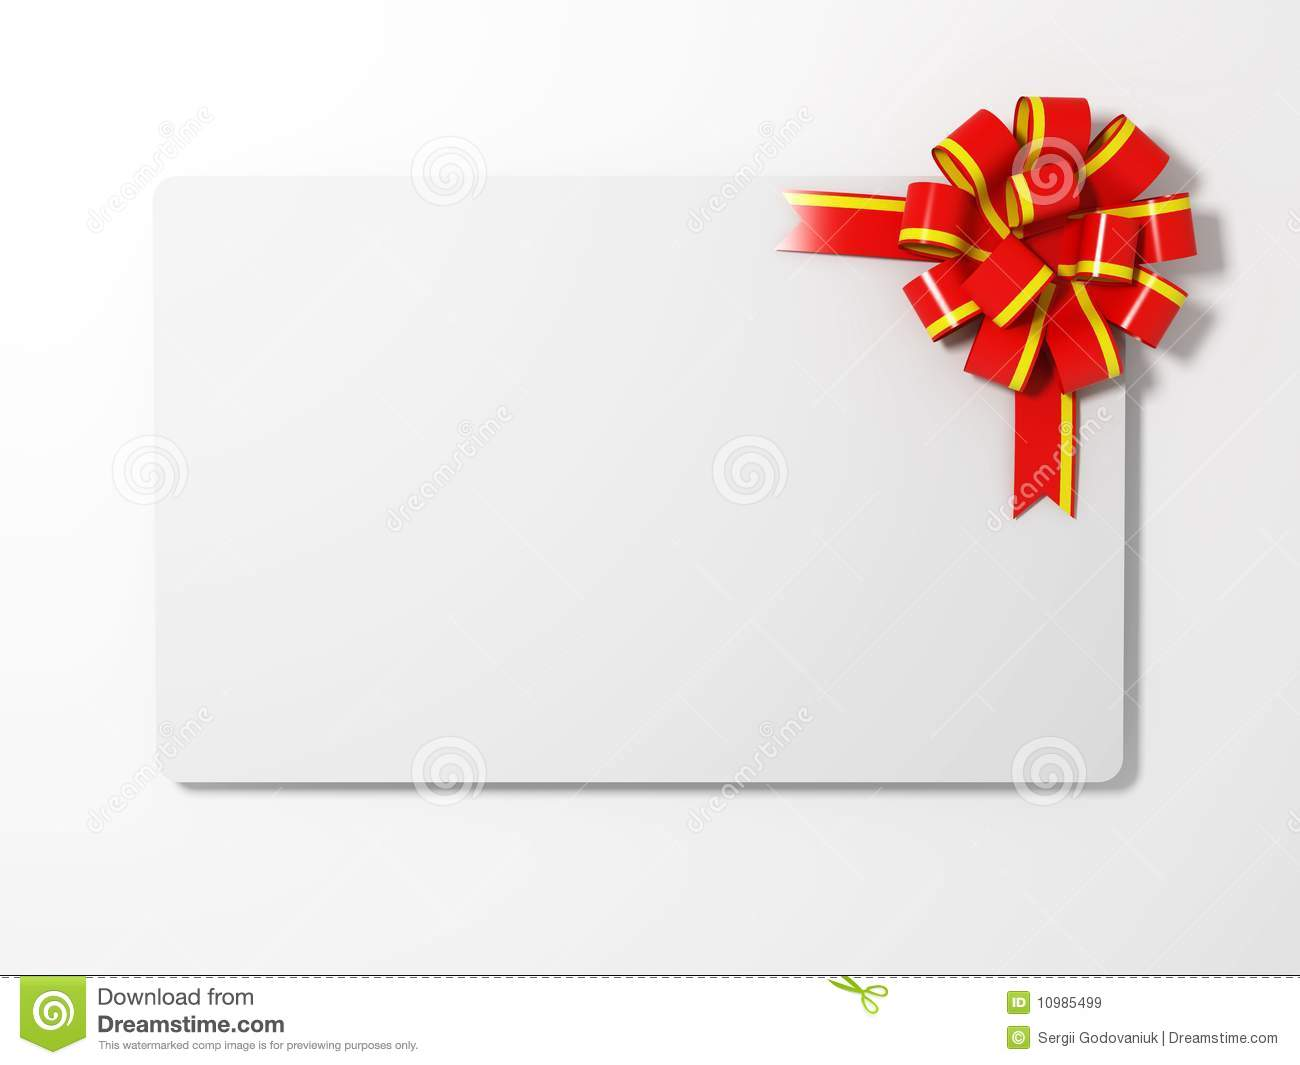 Blank Gift Card Royalty Free Stock Images - Image: 10985499